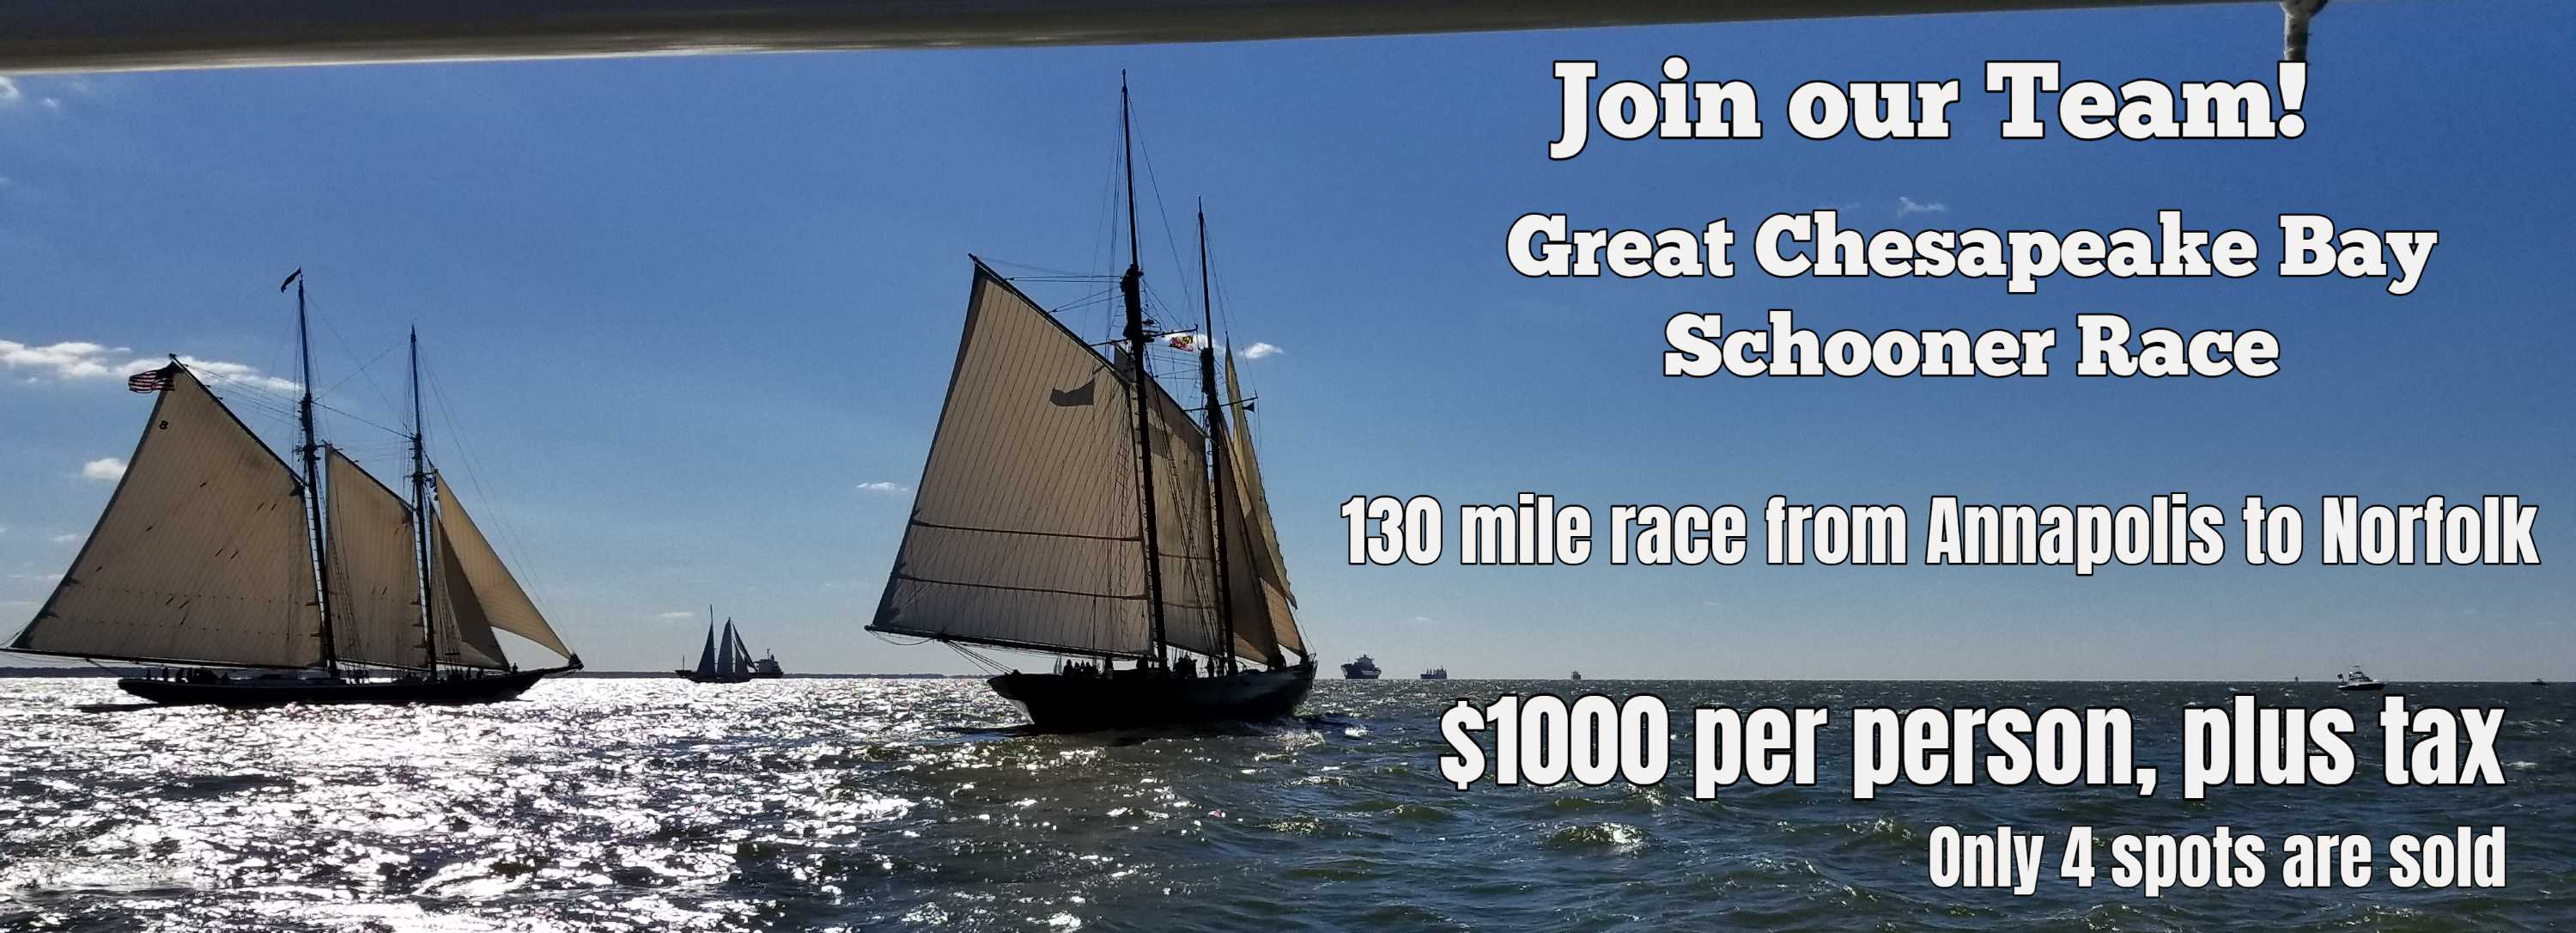 Join Our Team for the Great Chesapeake Bay Schooner Race featuring 2 boats sailing